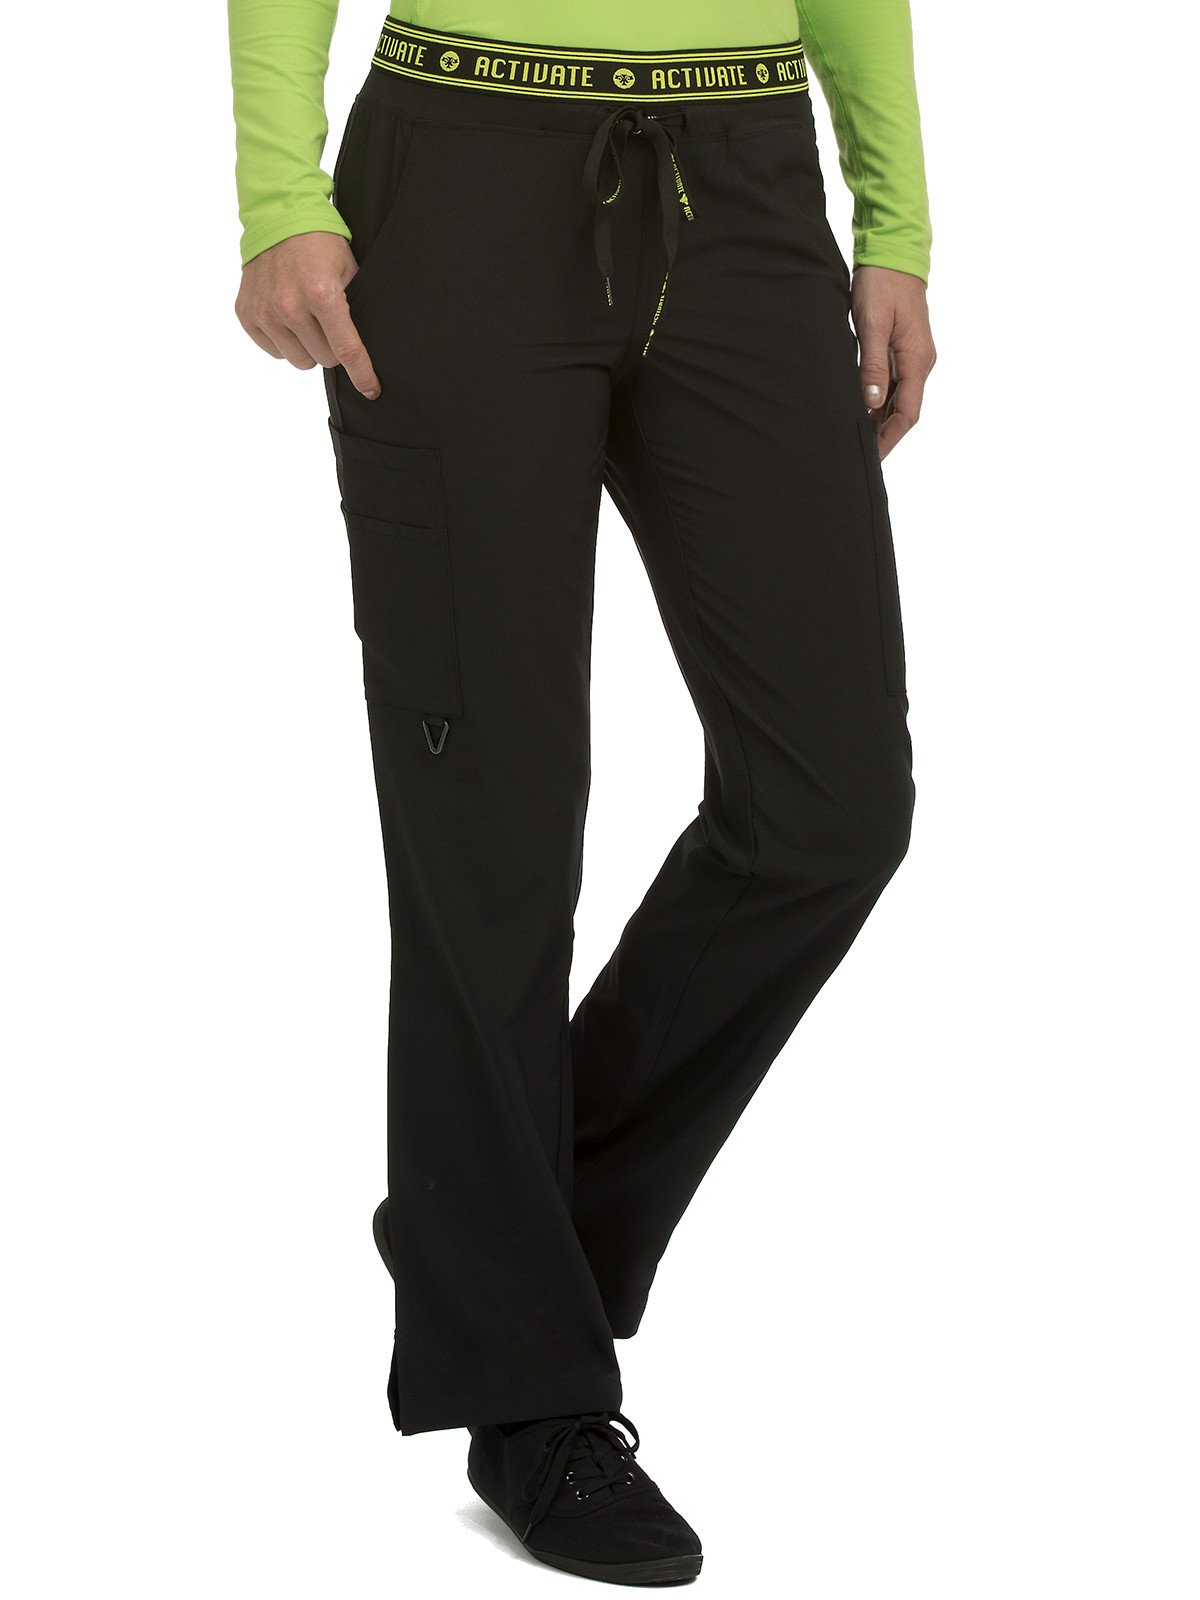 Med Couture Women's 'Activate' Flow Yoga Cargo Scrub Pant, Black, XX-Large